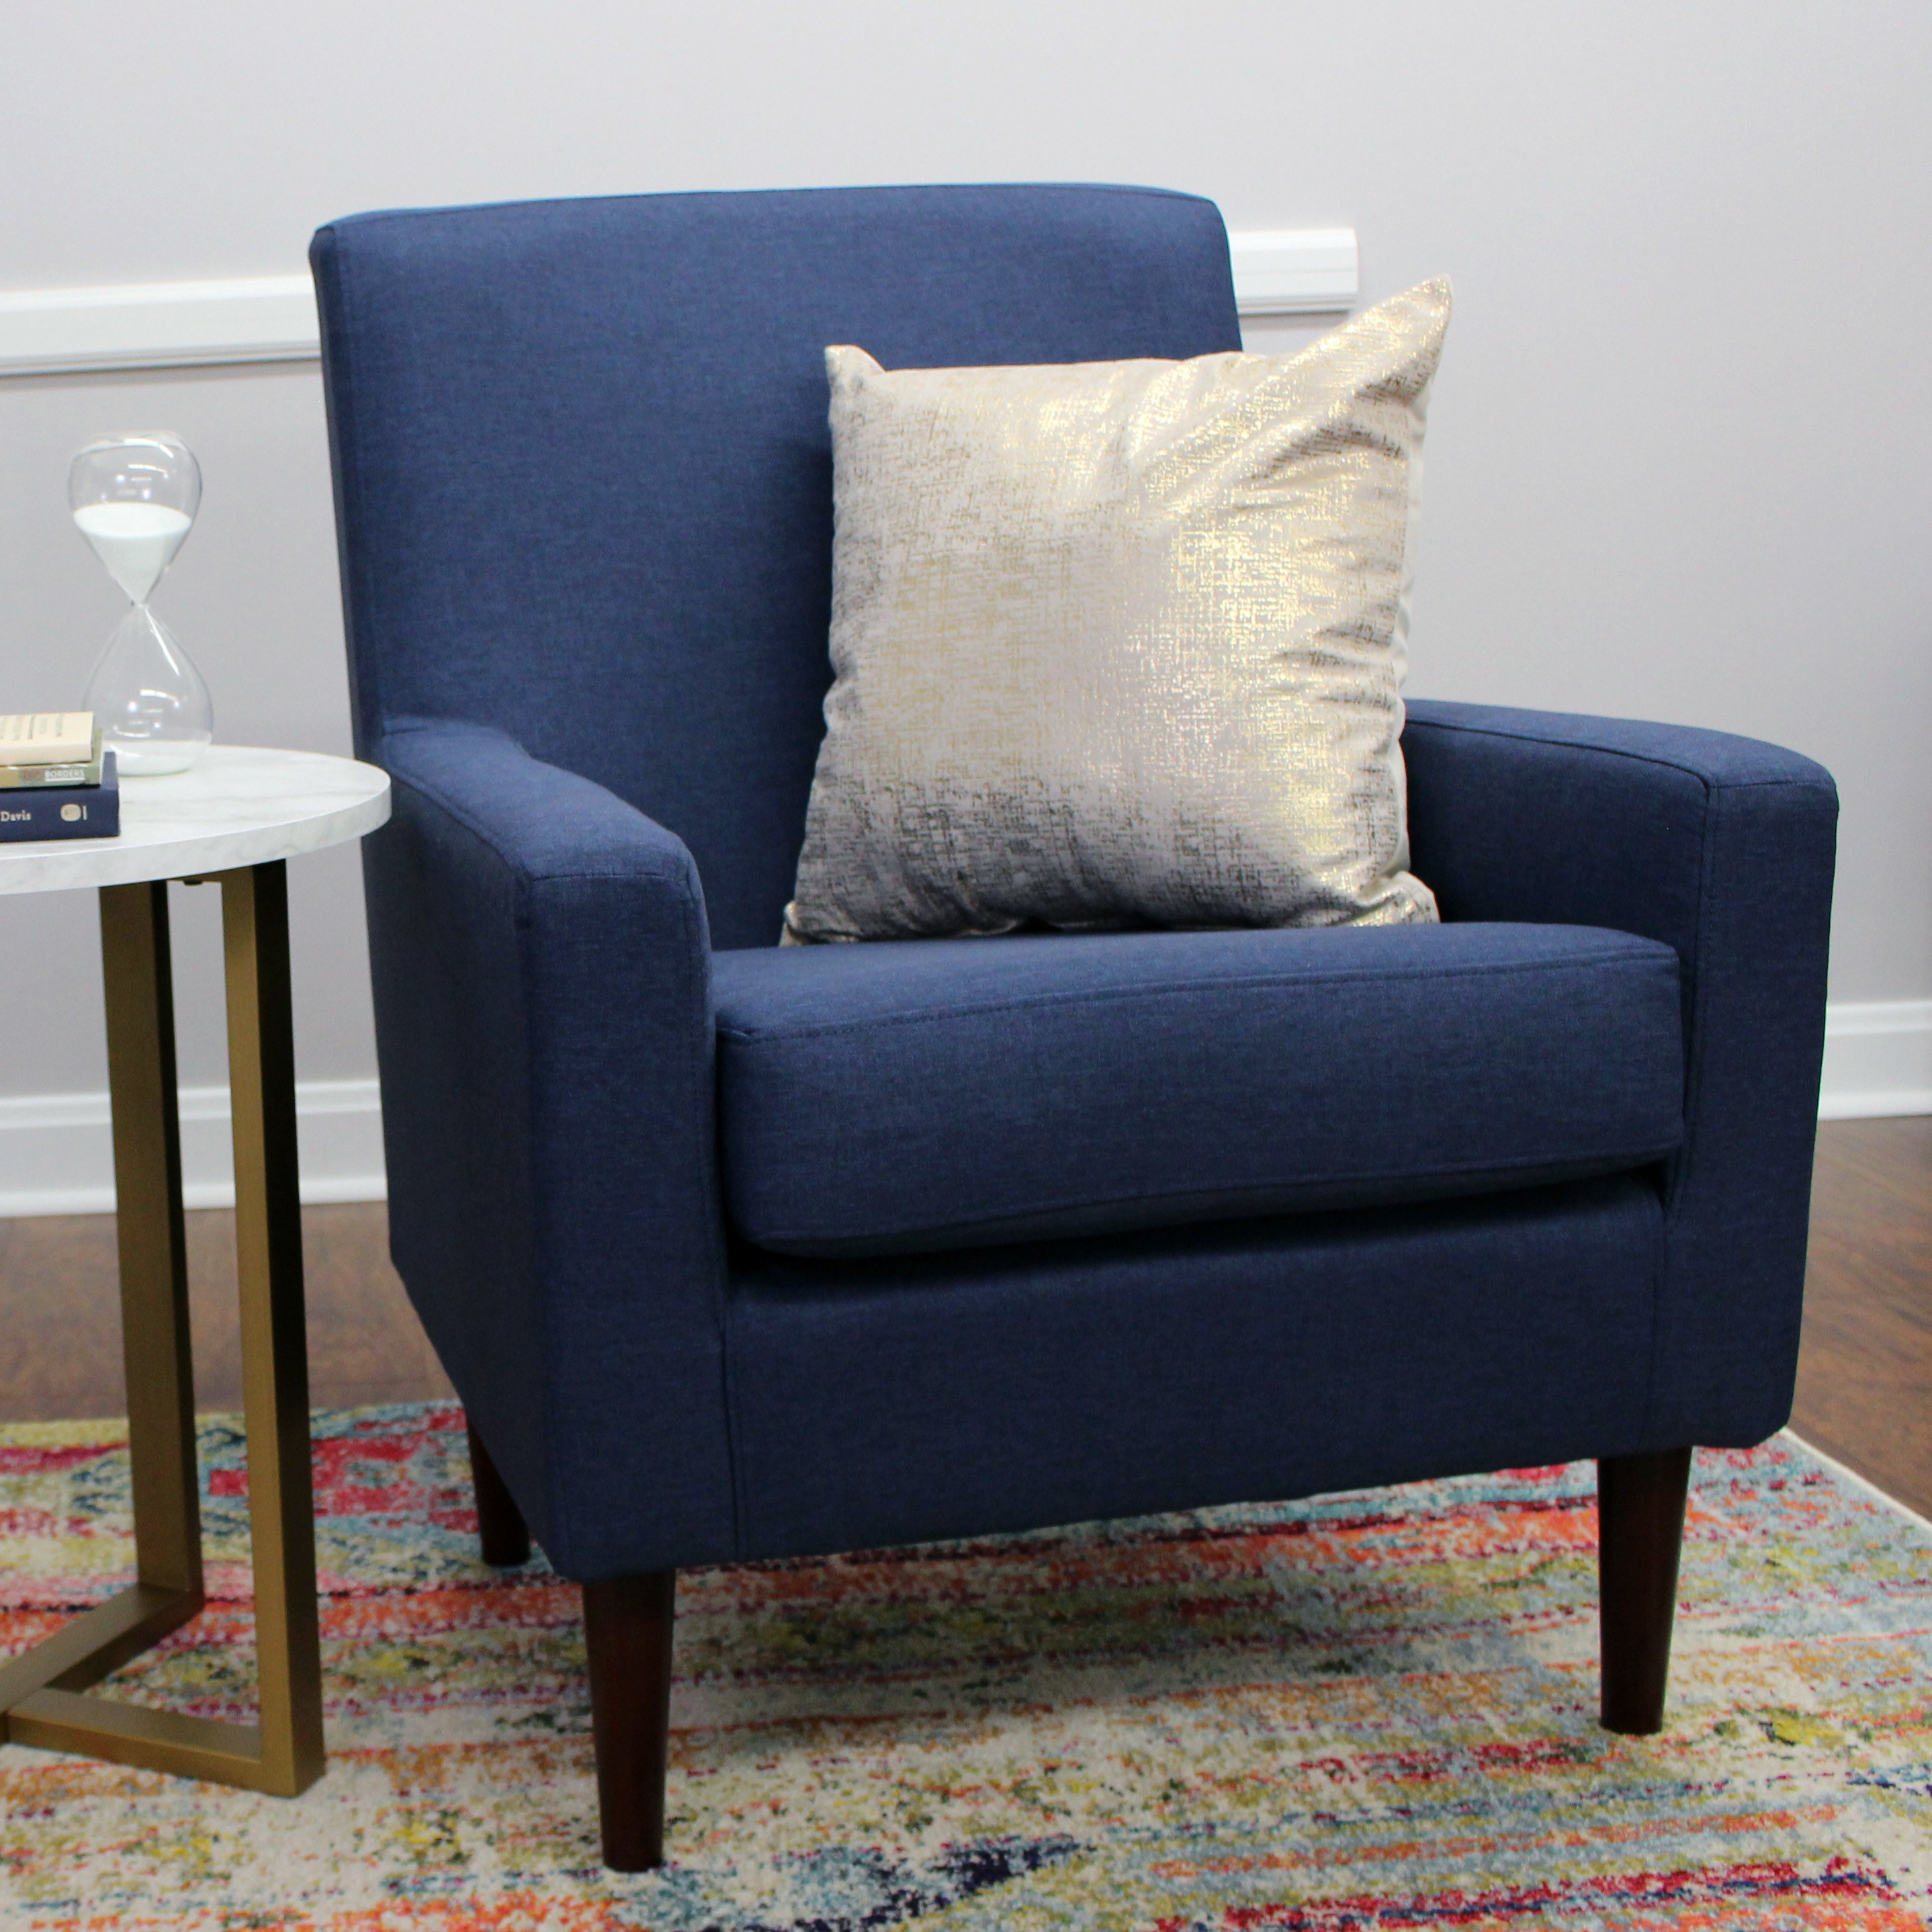 The blue chair, with a shimmery pillow